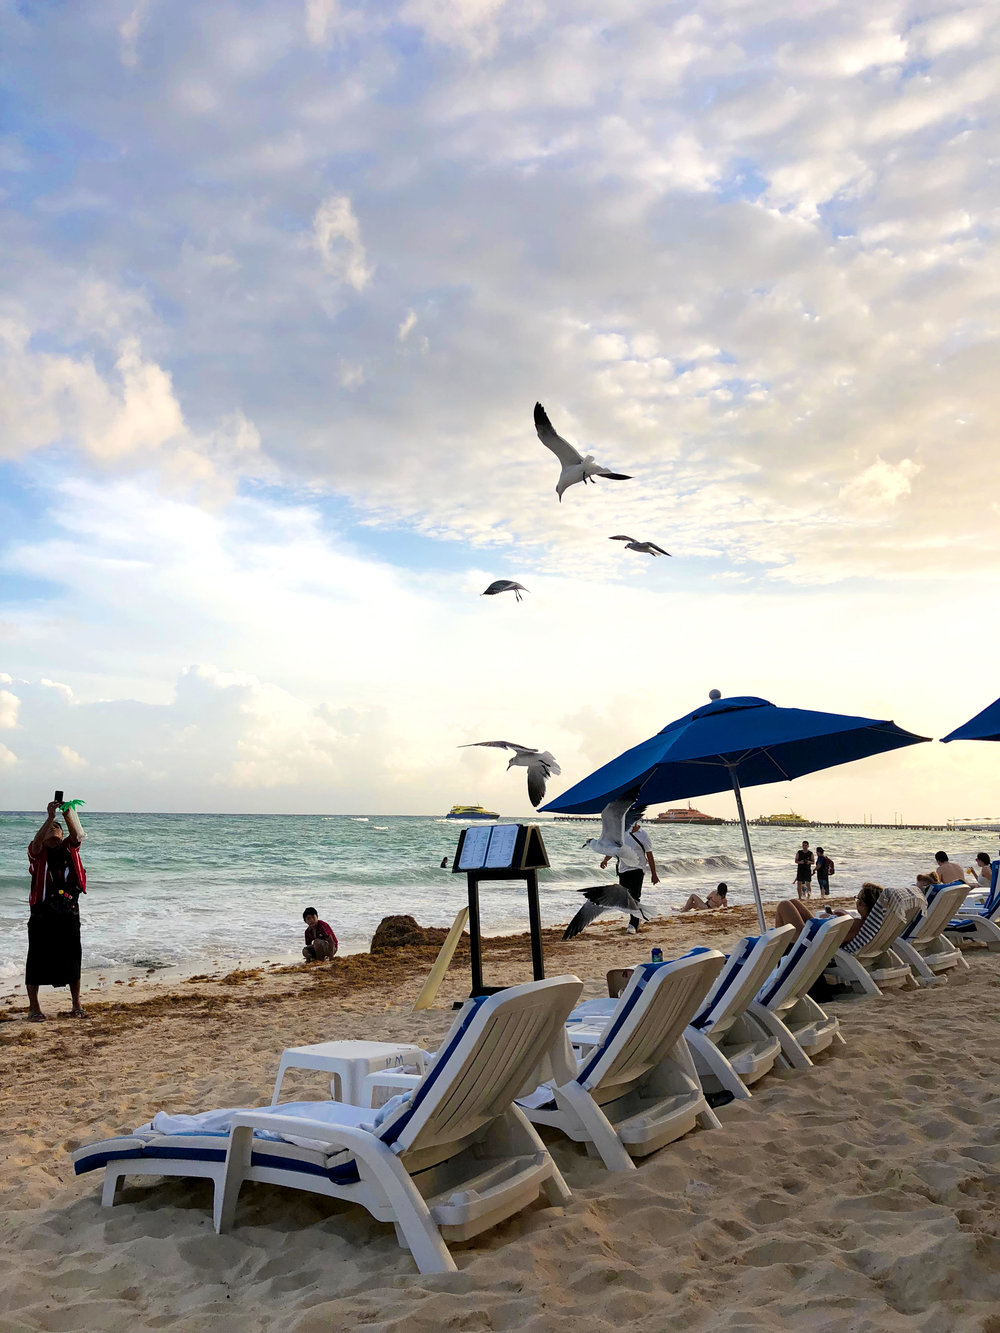 Playa del Carmen's beach. Lovely sunset views with seagulls flying over the Caribbean sea.